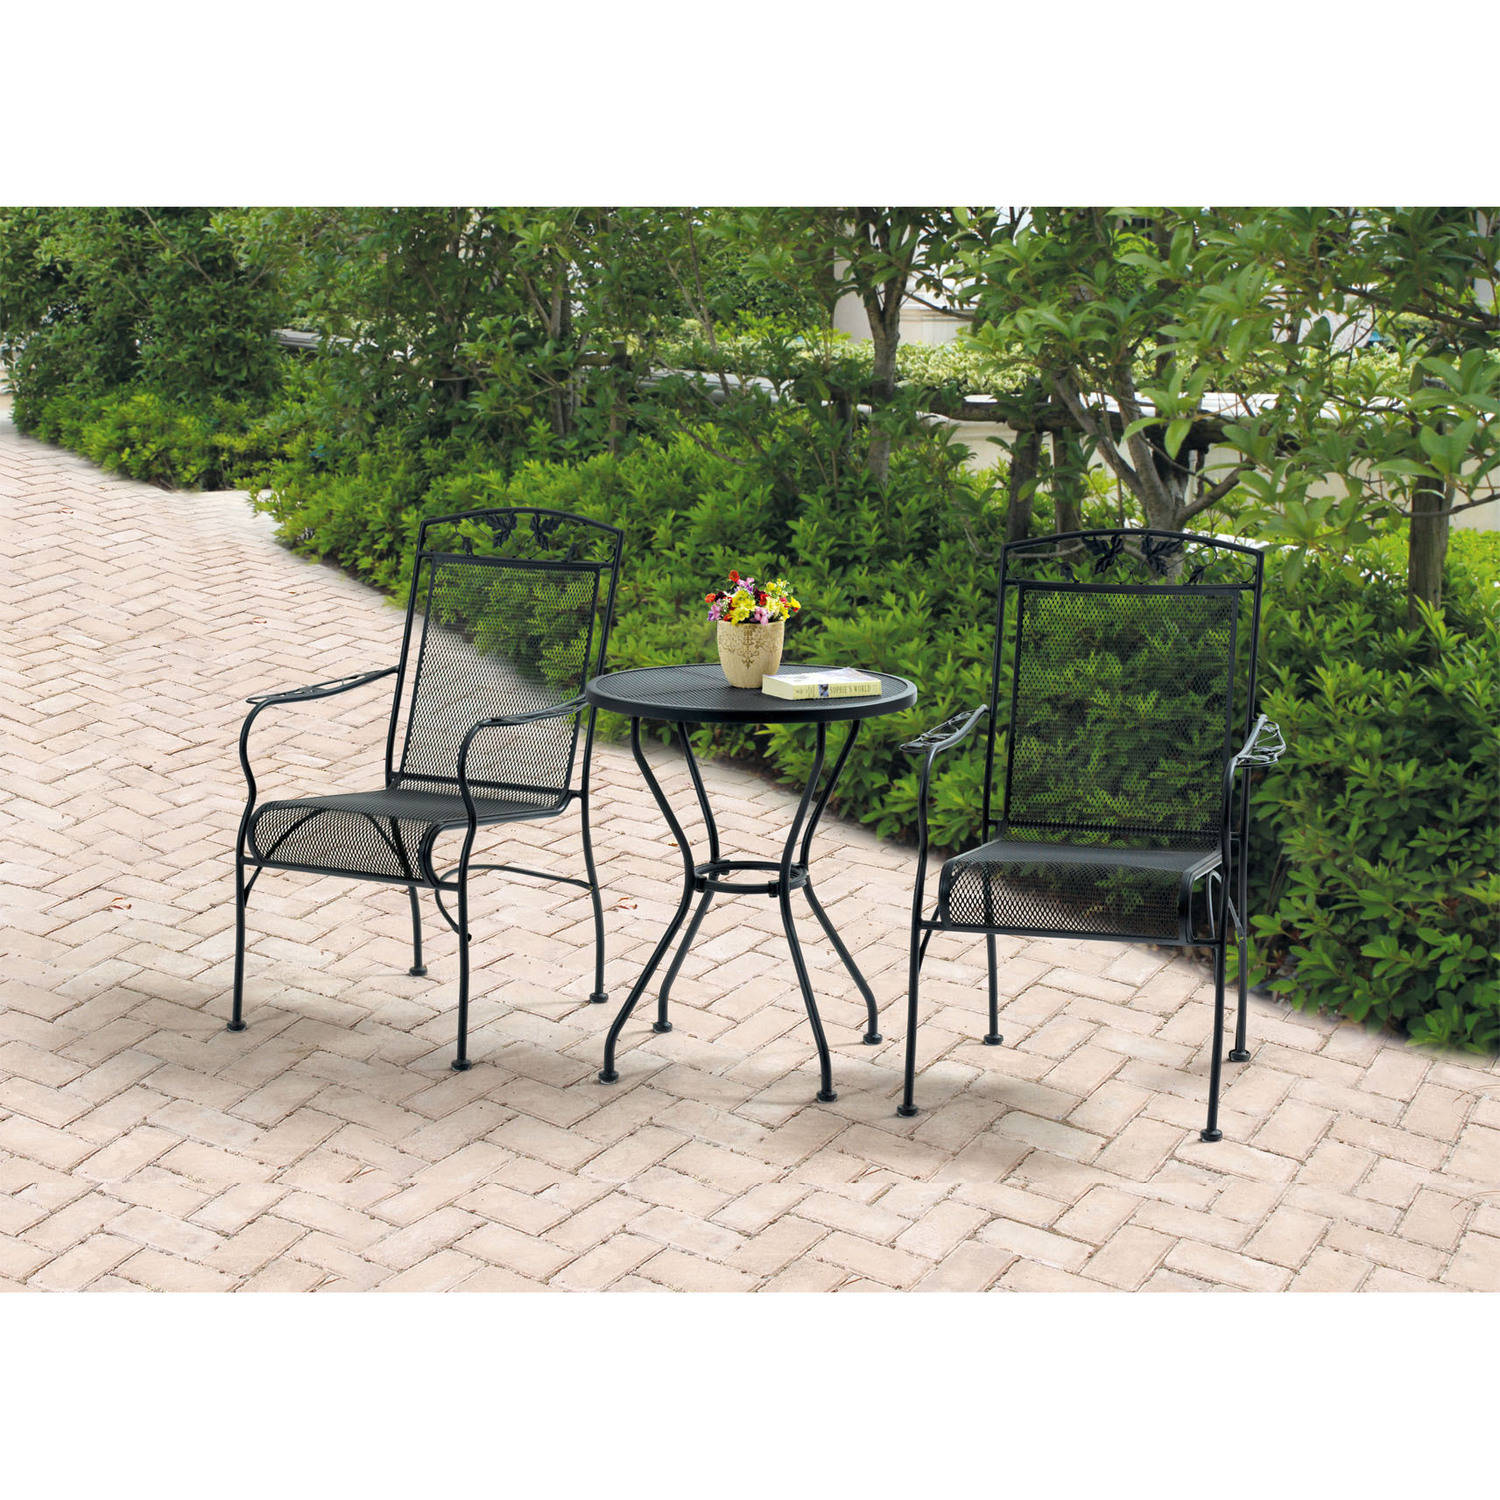 serene dp outdoor patio piece cosco ridge aluminum amazon set com dining brown garden dark